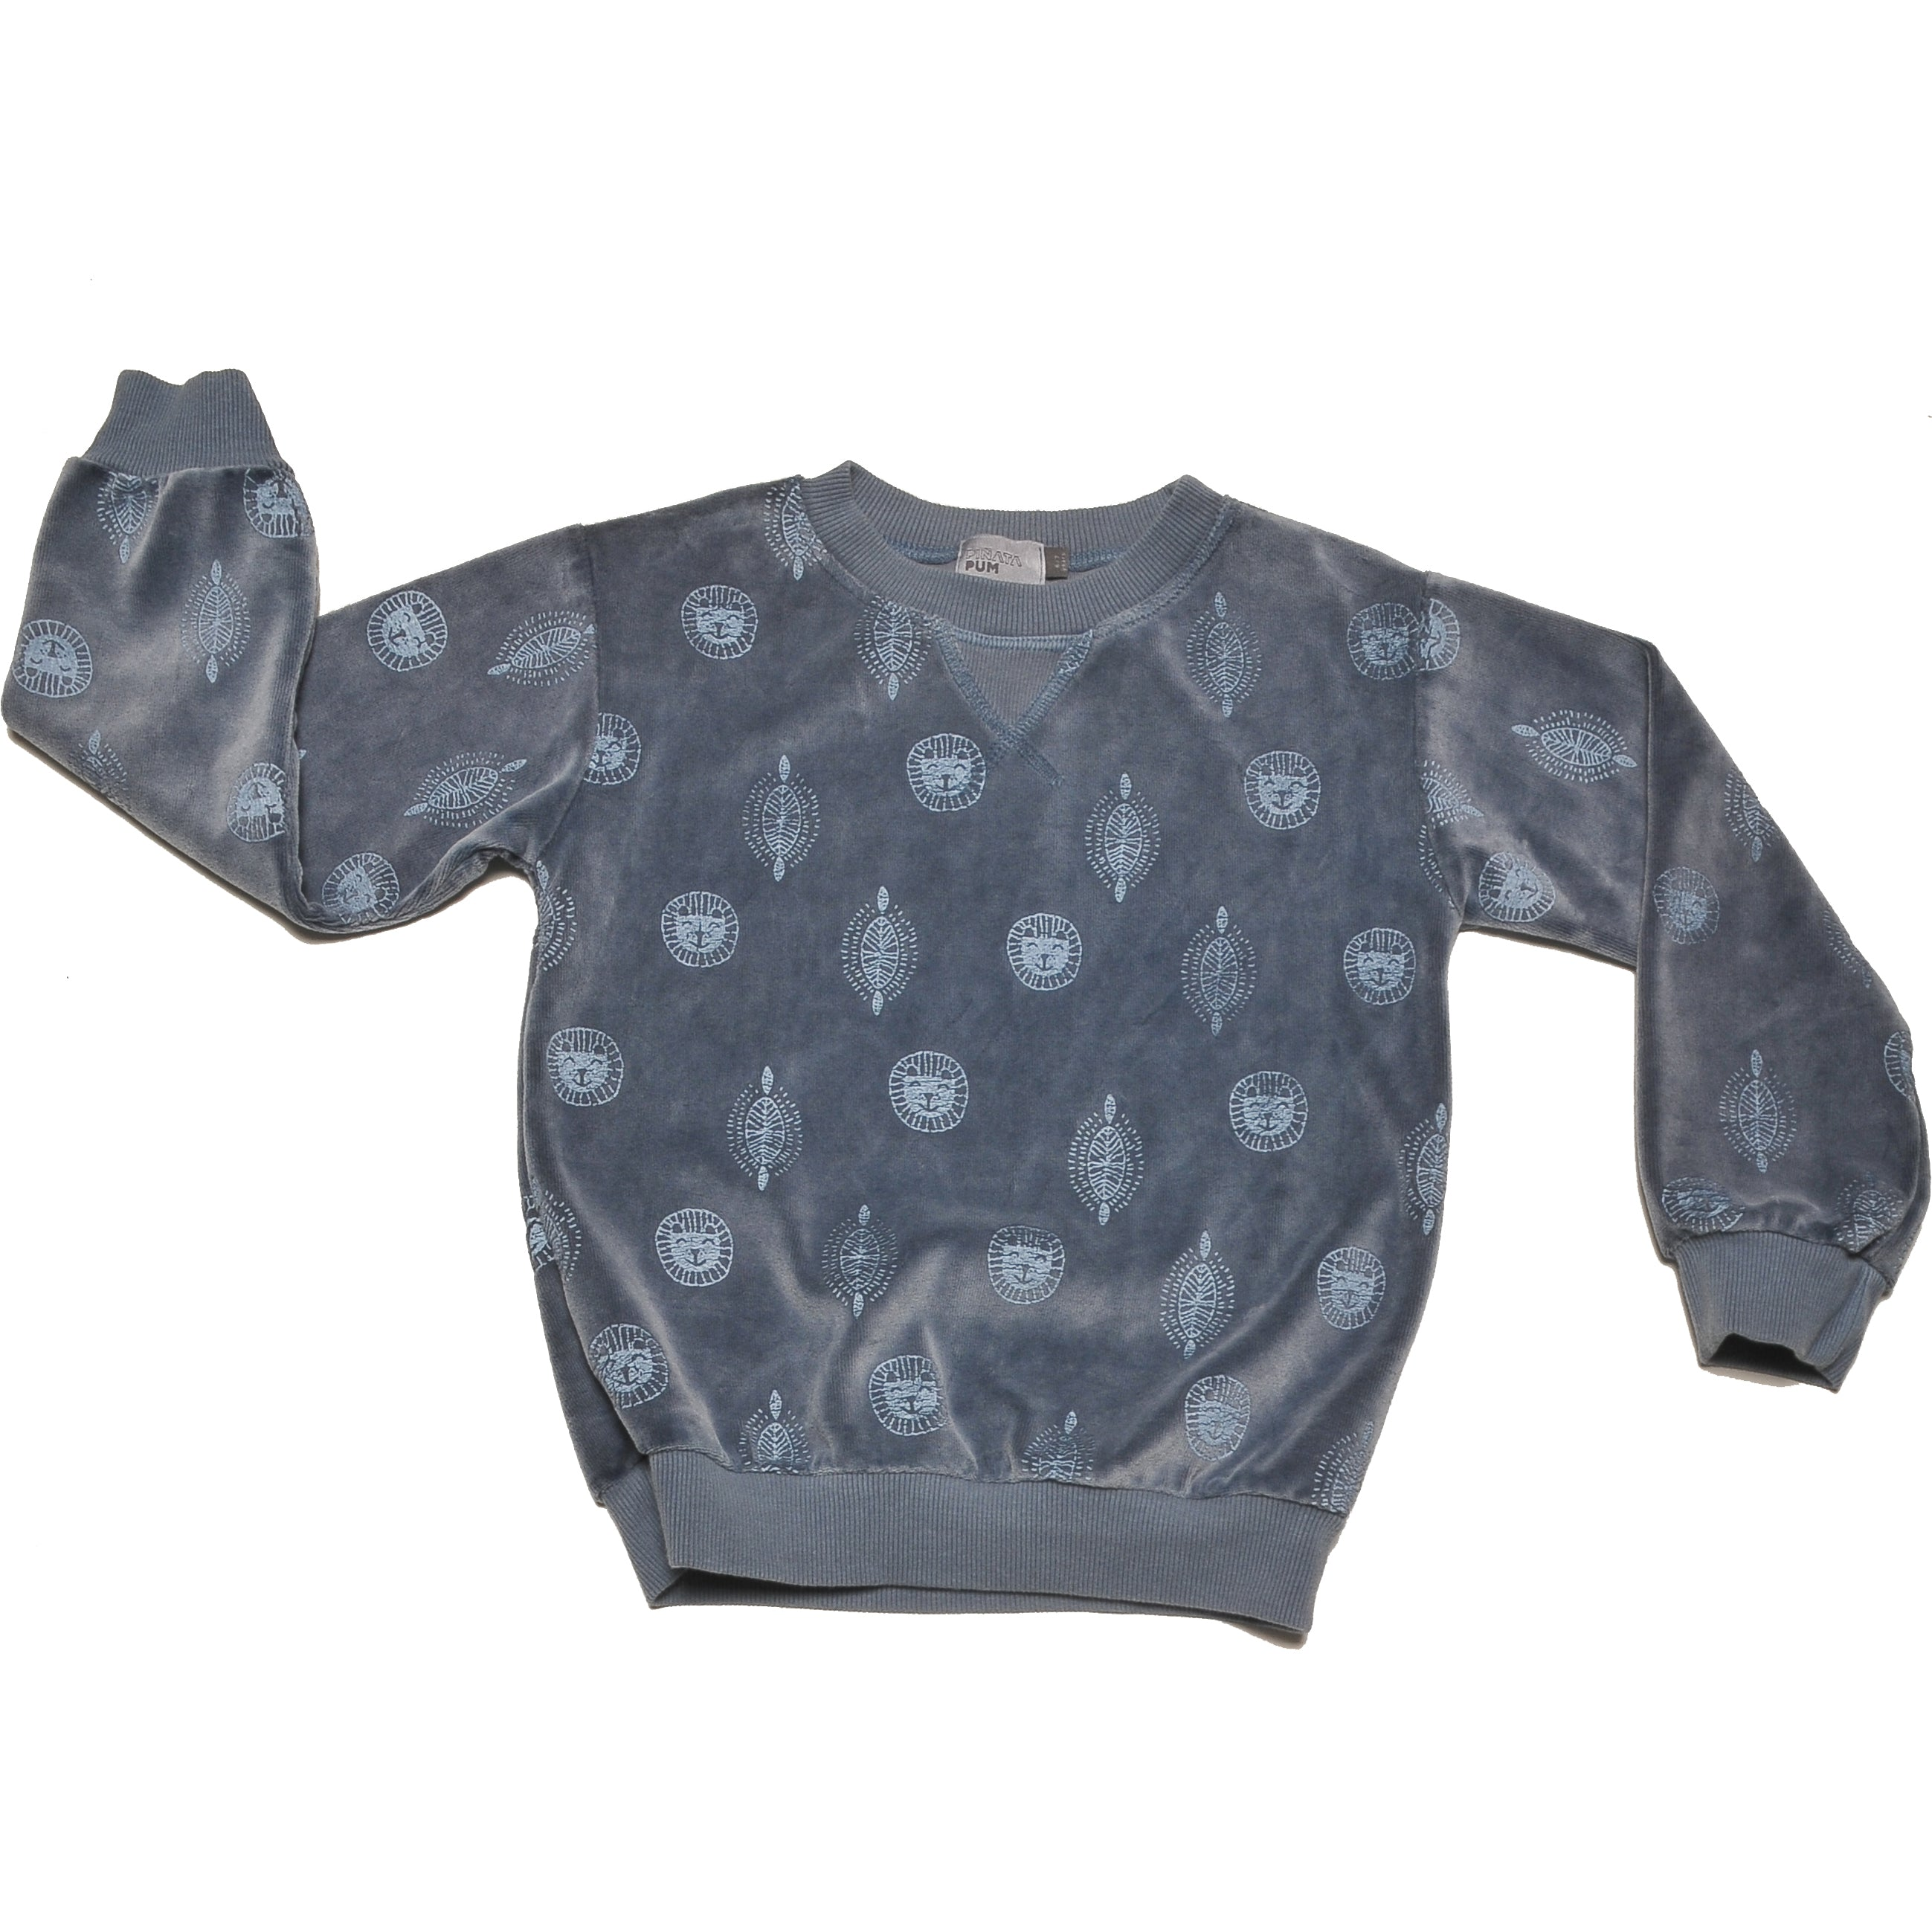 MERCURIO BLUE ALLOVER TERRY SWEATSHIRT